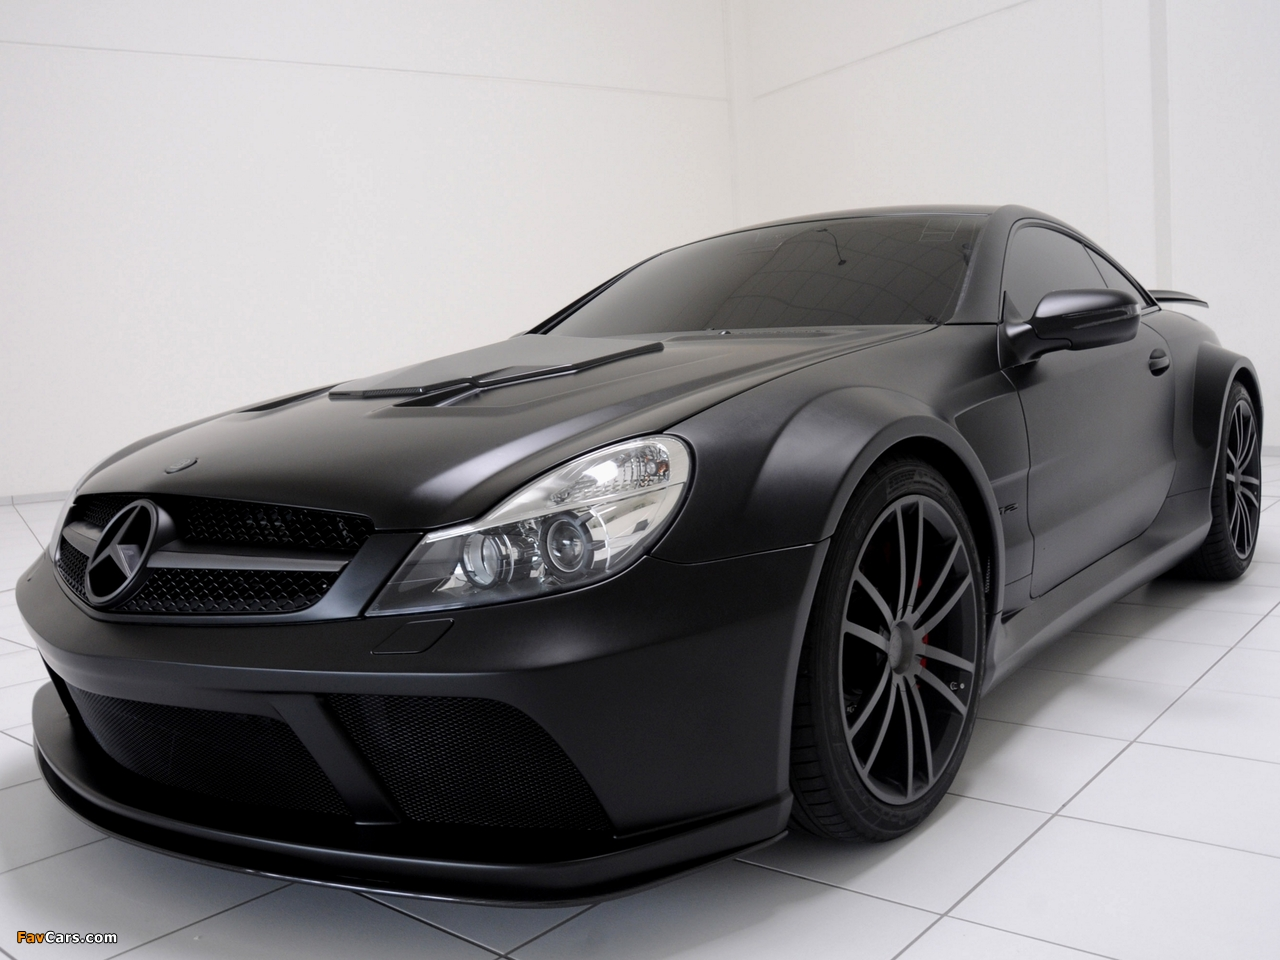 Brabus T65 RS (R230) 2010 images (1280 x 960)